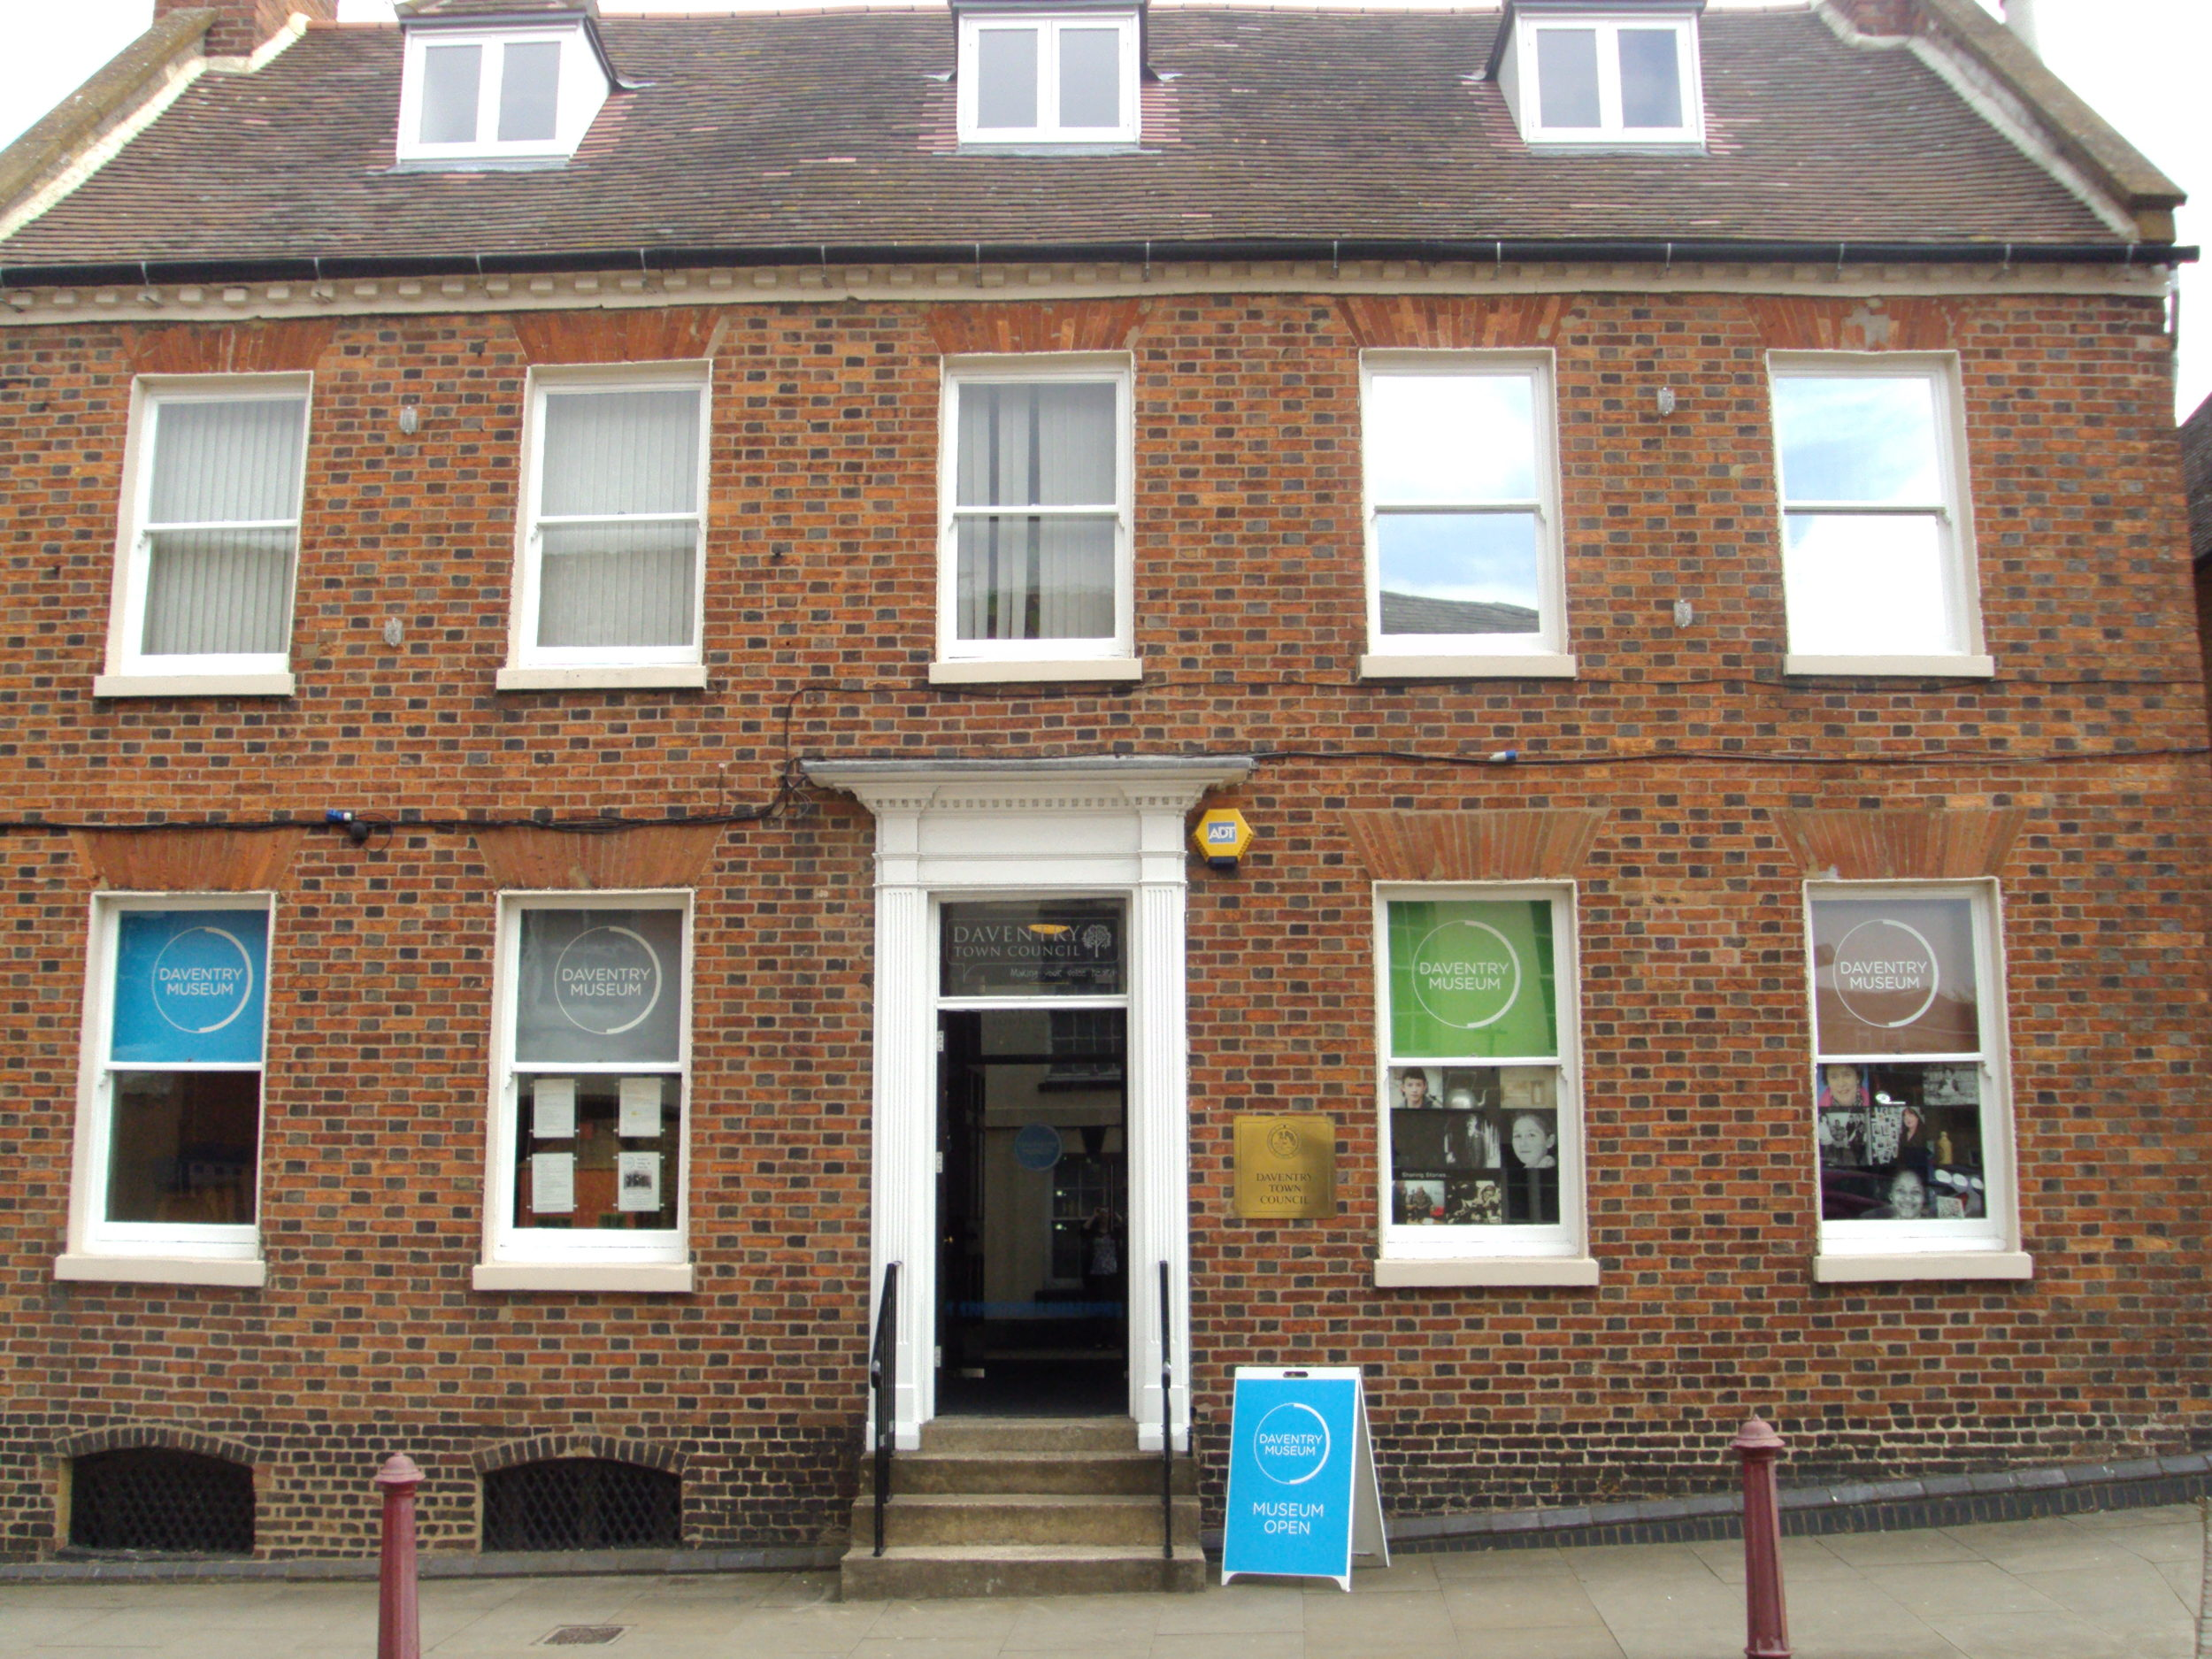 Photograph of a brown bricked, 3 storey building with Daventry Museum mid blue coloured a frame saying museum open. 4 windows on the ground floor display the museum logo on blue, grey, green and brown blinds